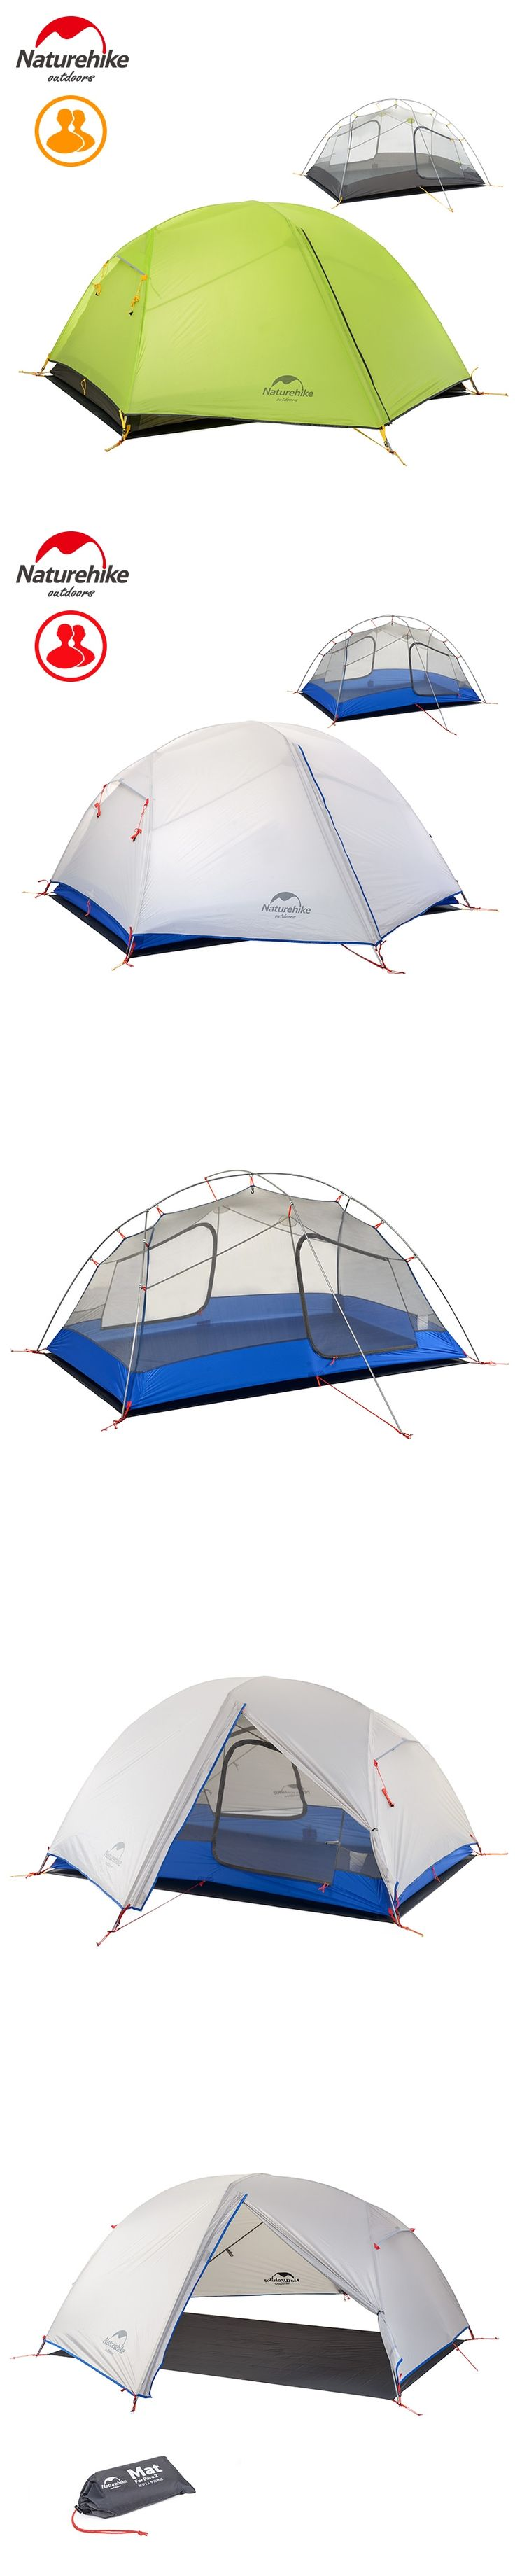 Naturehike 2 Person Outdoor Double-layer Tent Ultralight Camping Waterproof 3 Season Tent NH17T006-L